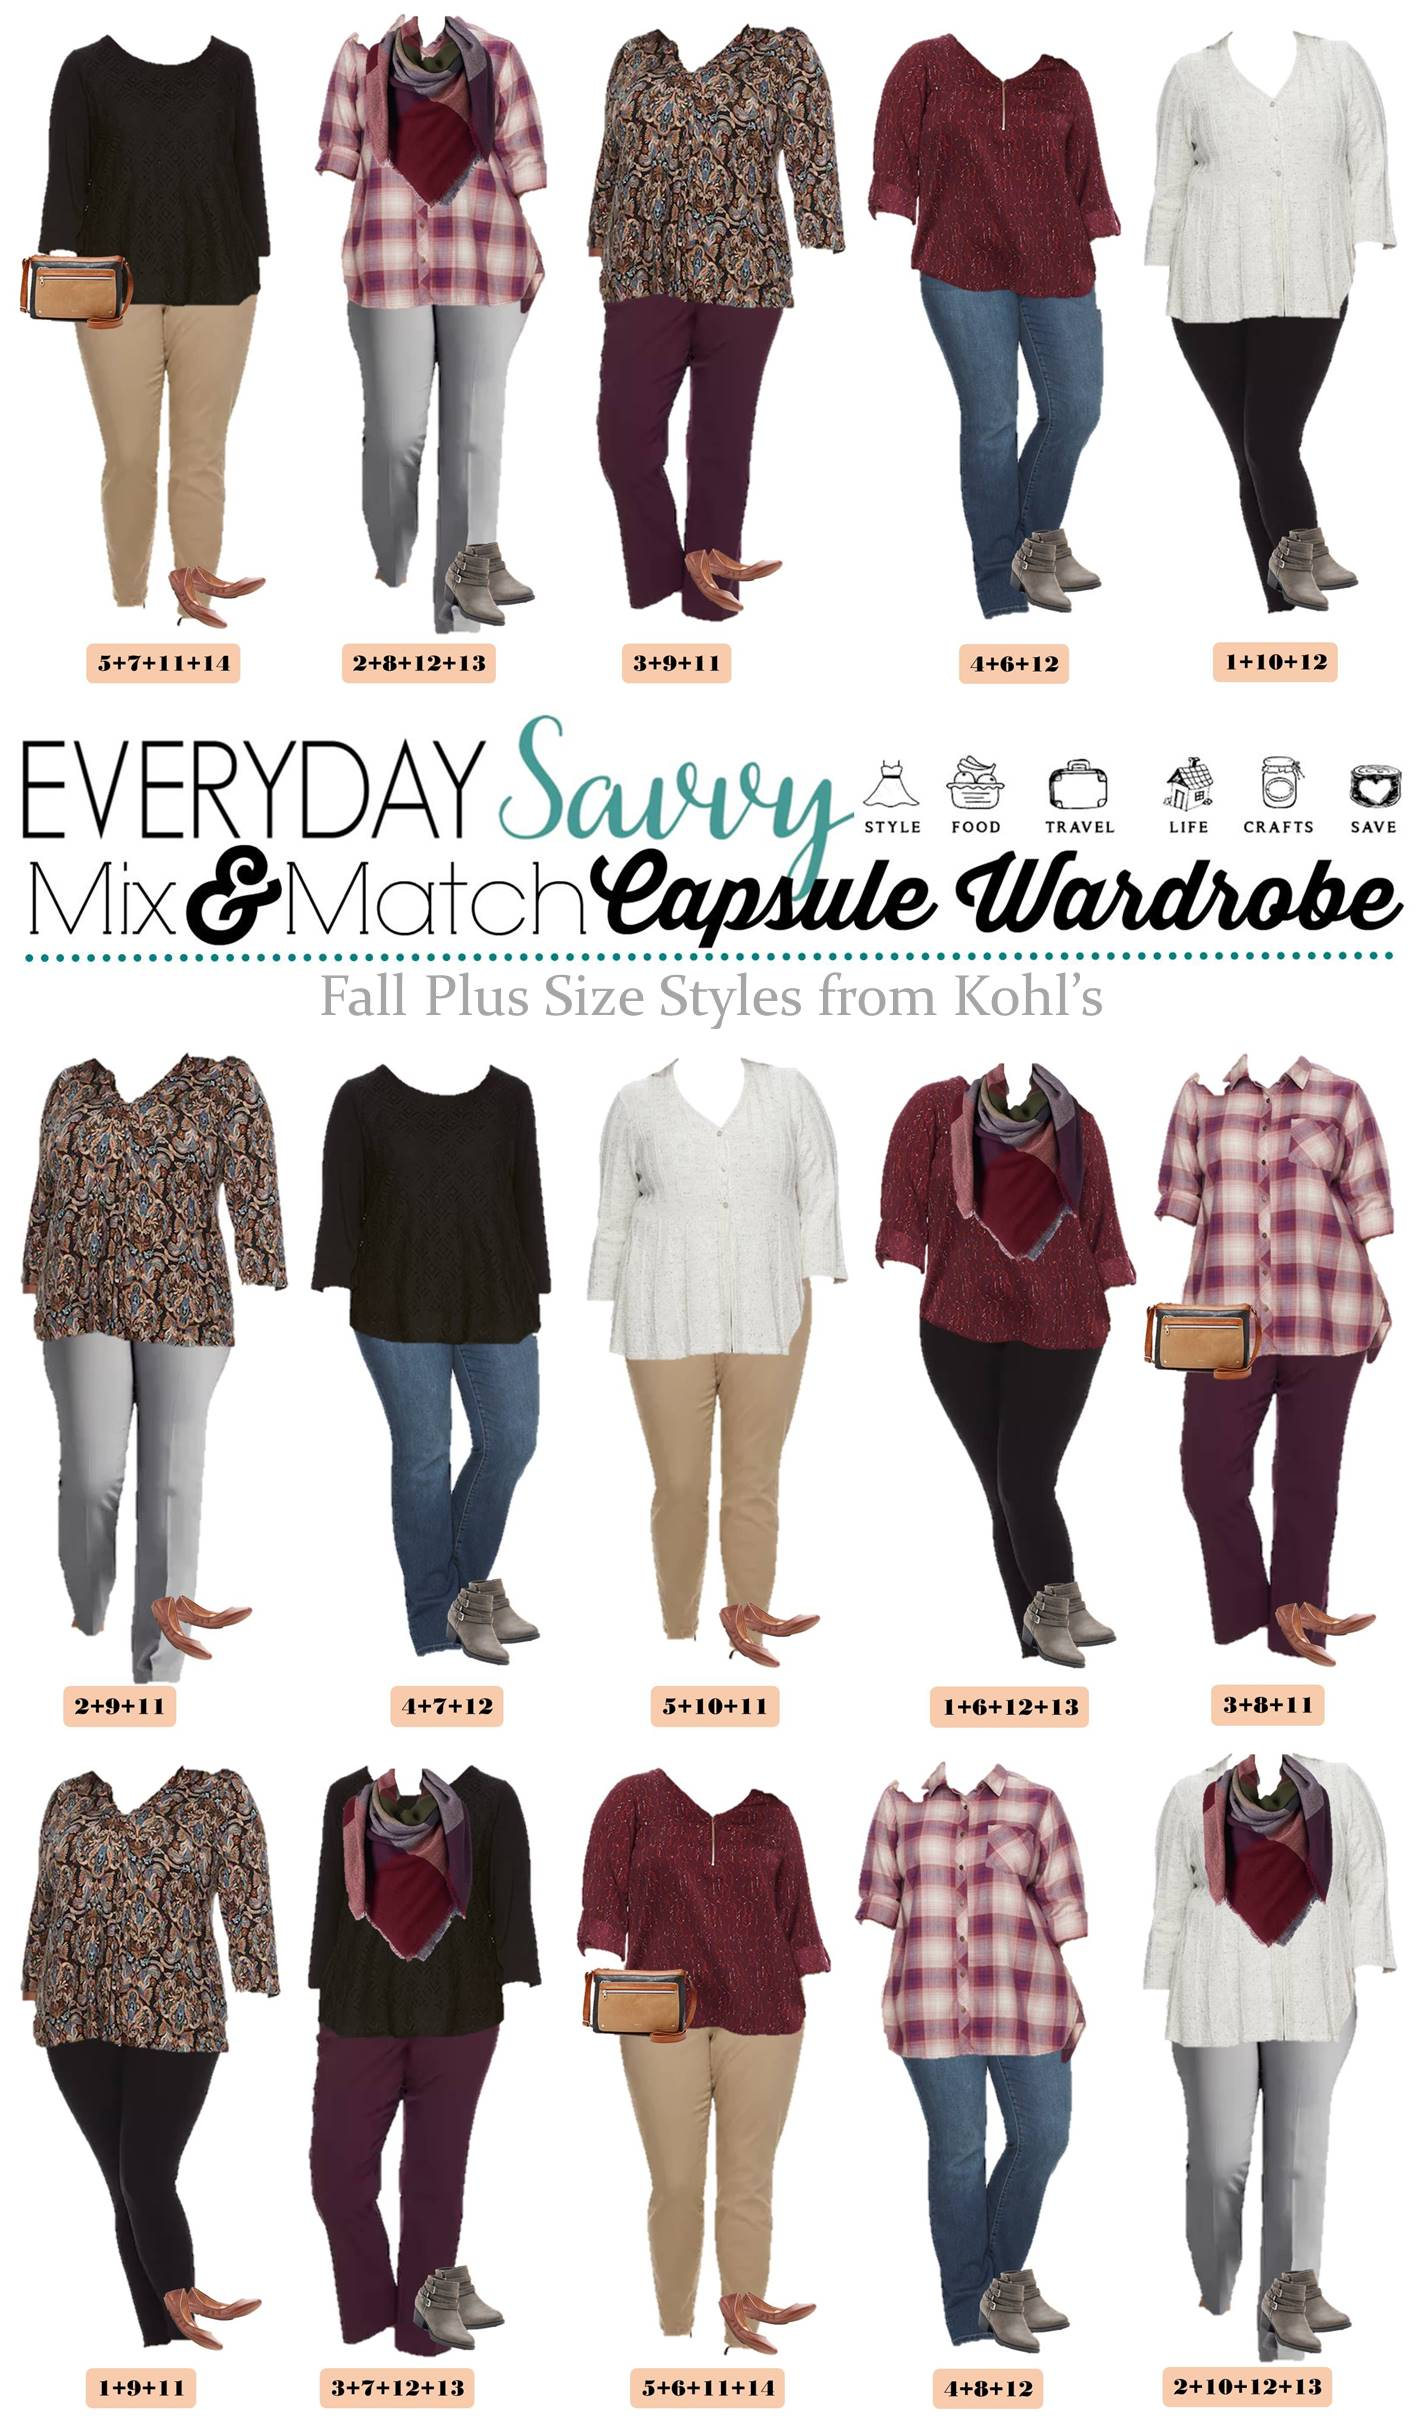 Fall Plus Size Outfits From Kohls - Mini Capsule Mix & Match